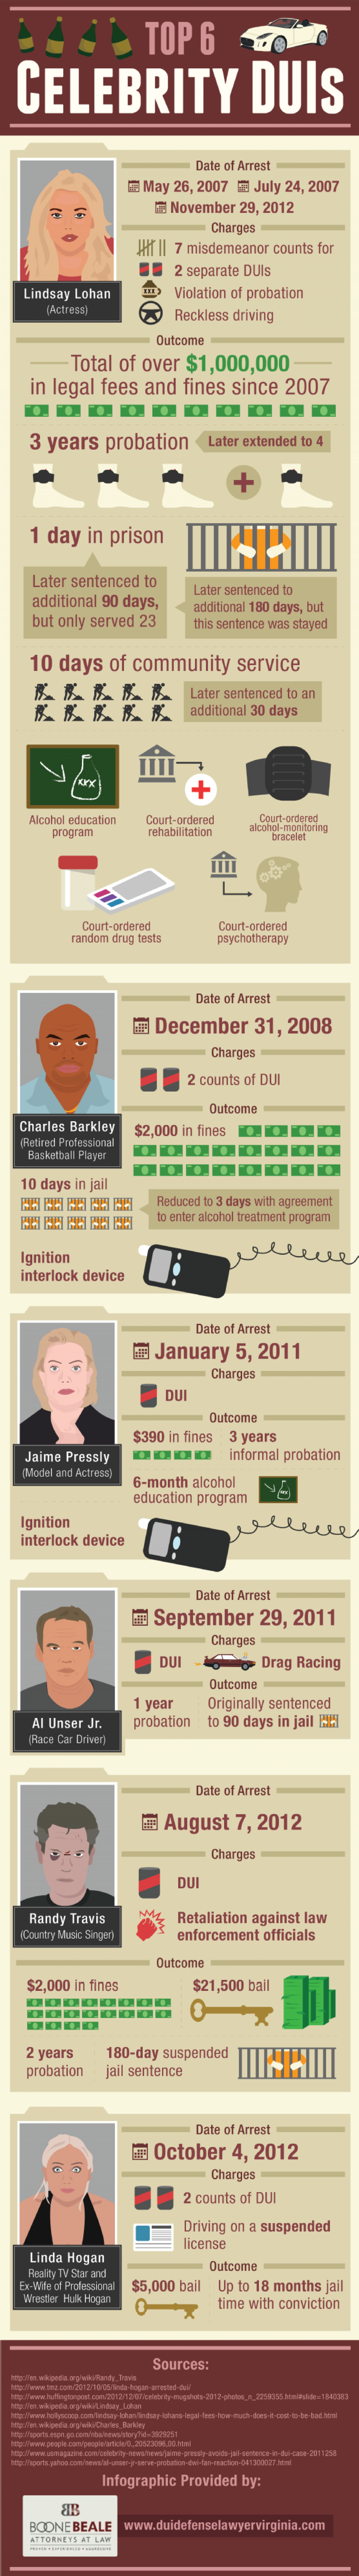 Top 6 Celebrity DUIs Infographic